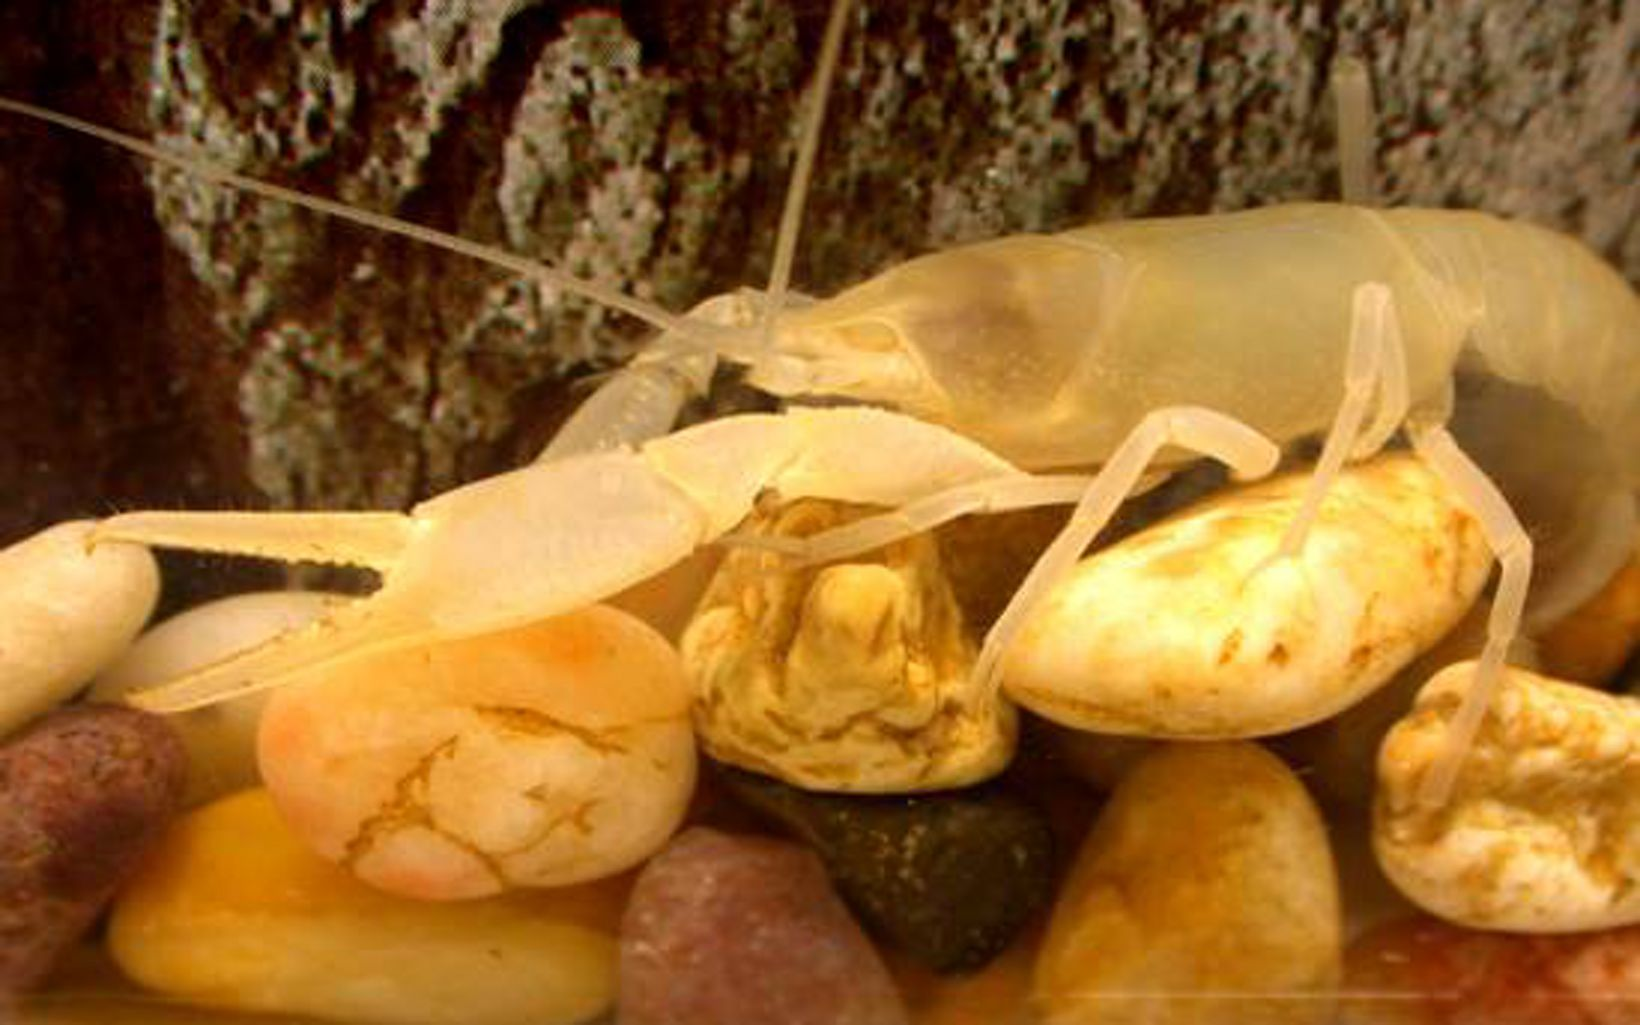 Almost camouflaged by the light-colored rocks, the cave crayfish makes its way around the cave.